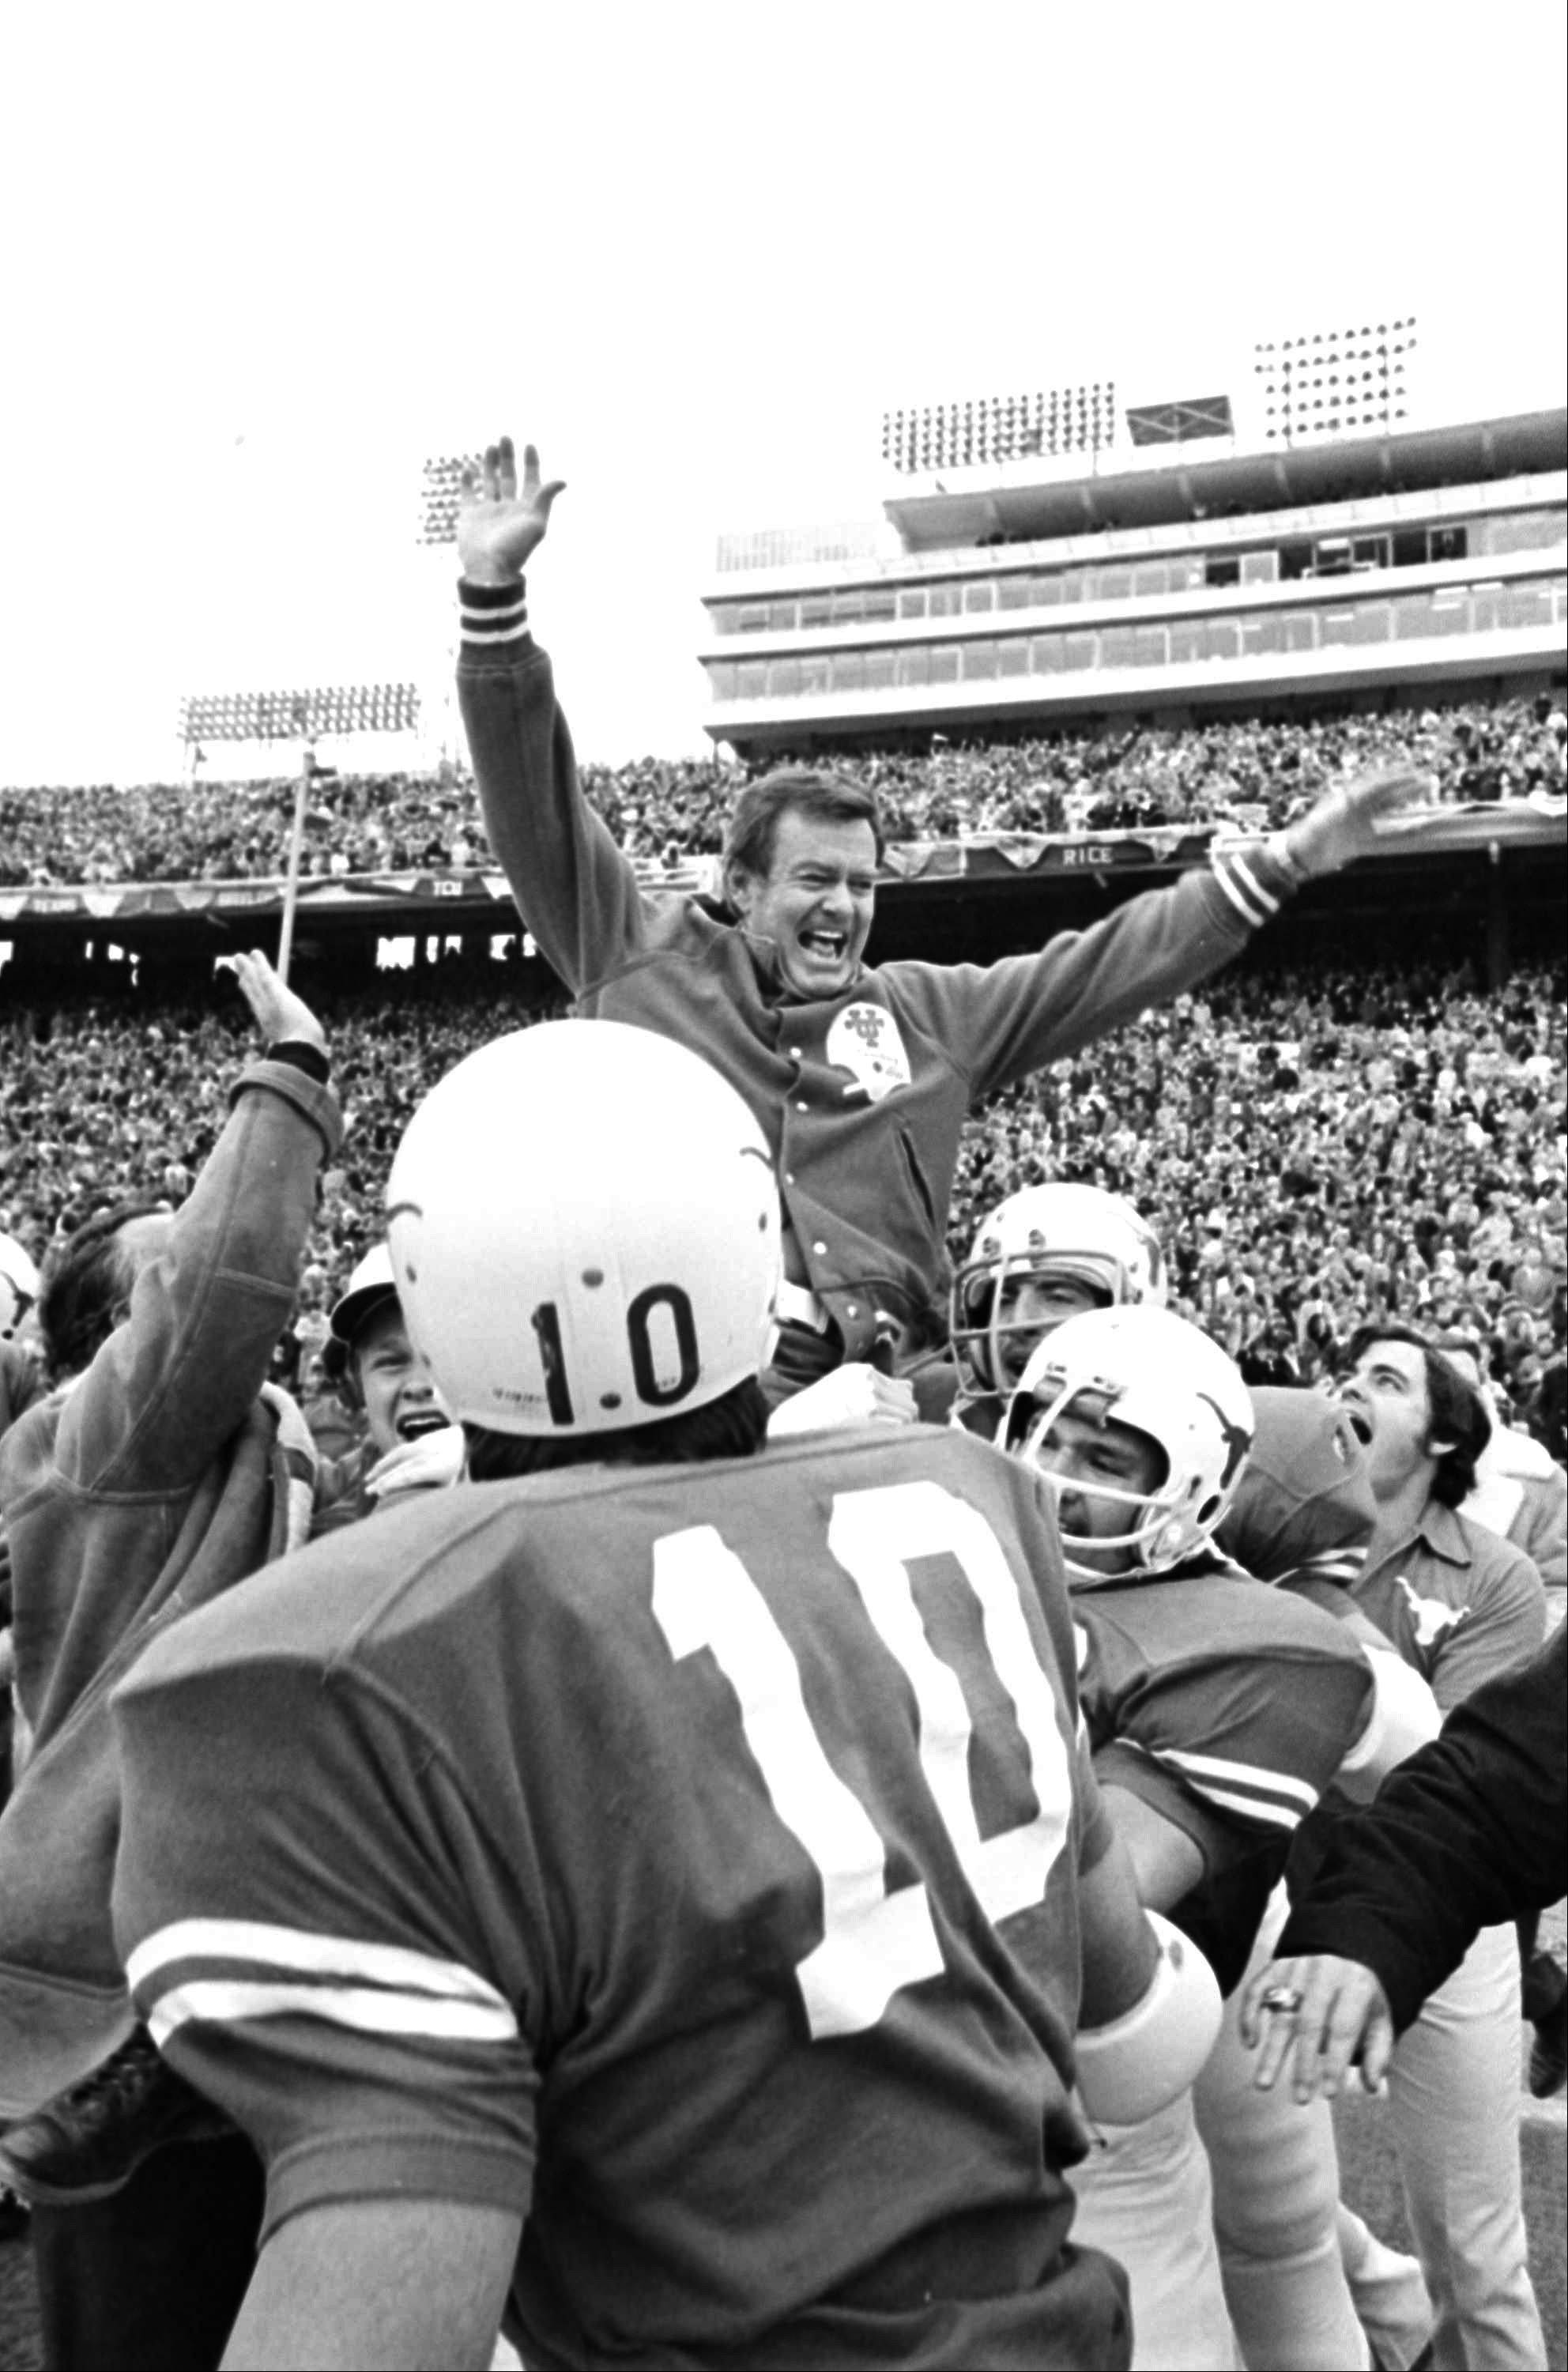 The University of Texas says former football coach Darrell Royal, who won two national championships and a share of a third, has died. He was 88. UT spokesman Nick Voinis on Wednesday confirmed Royal's death in Austin.